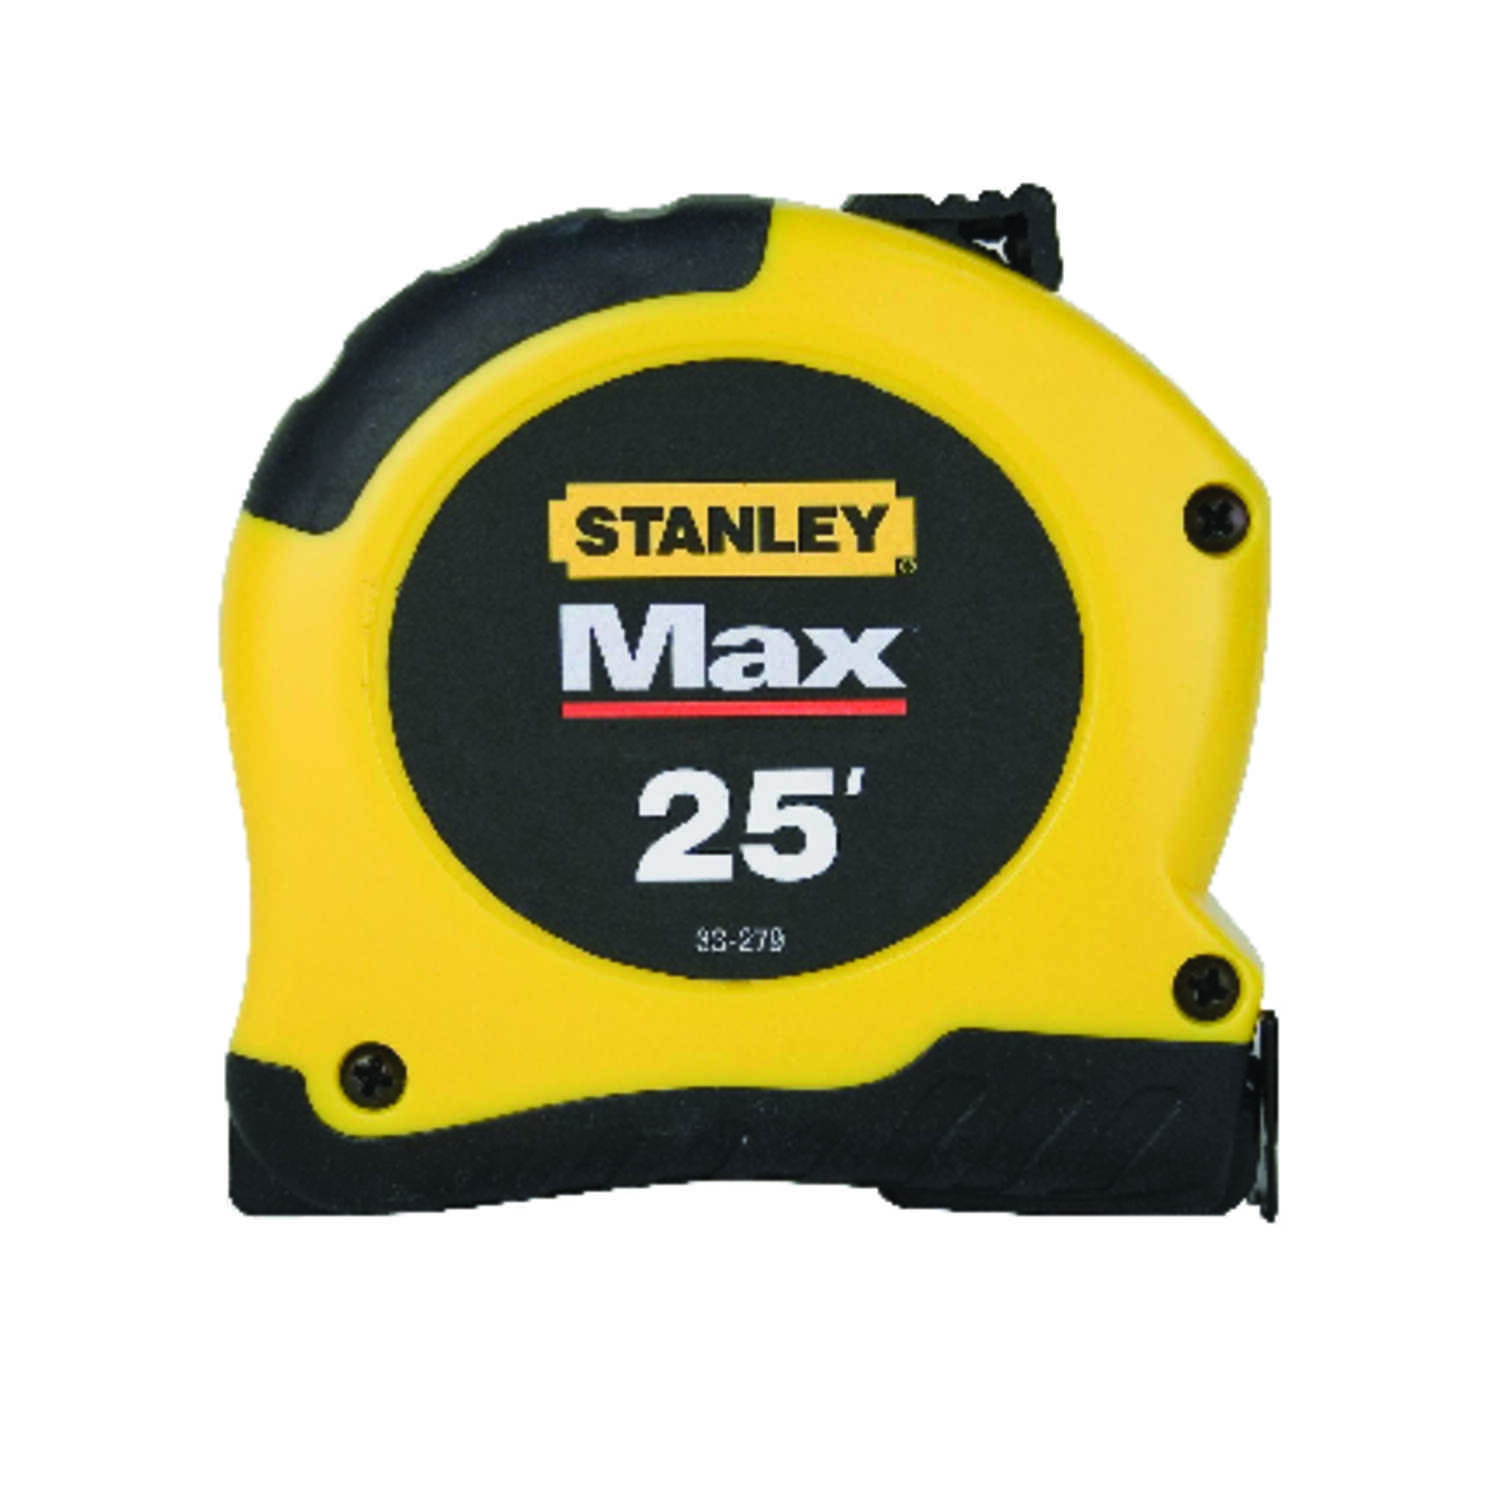 Stanley  Max  25 ft. L x 1.13 in. W Tape Measure  Black/Yellow  1 pk